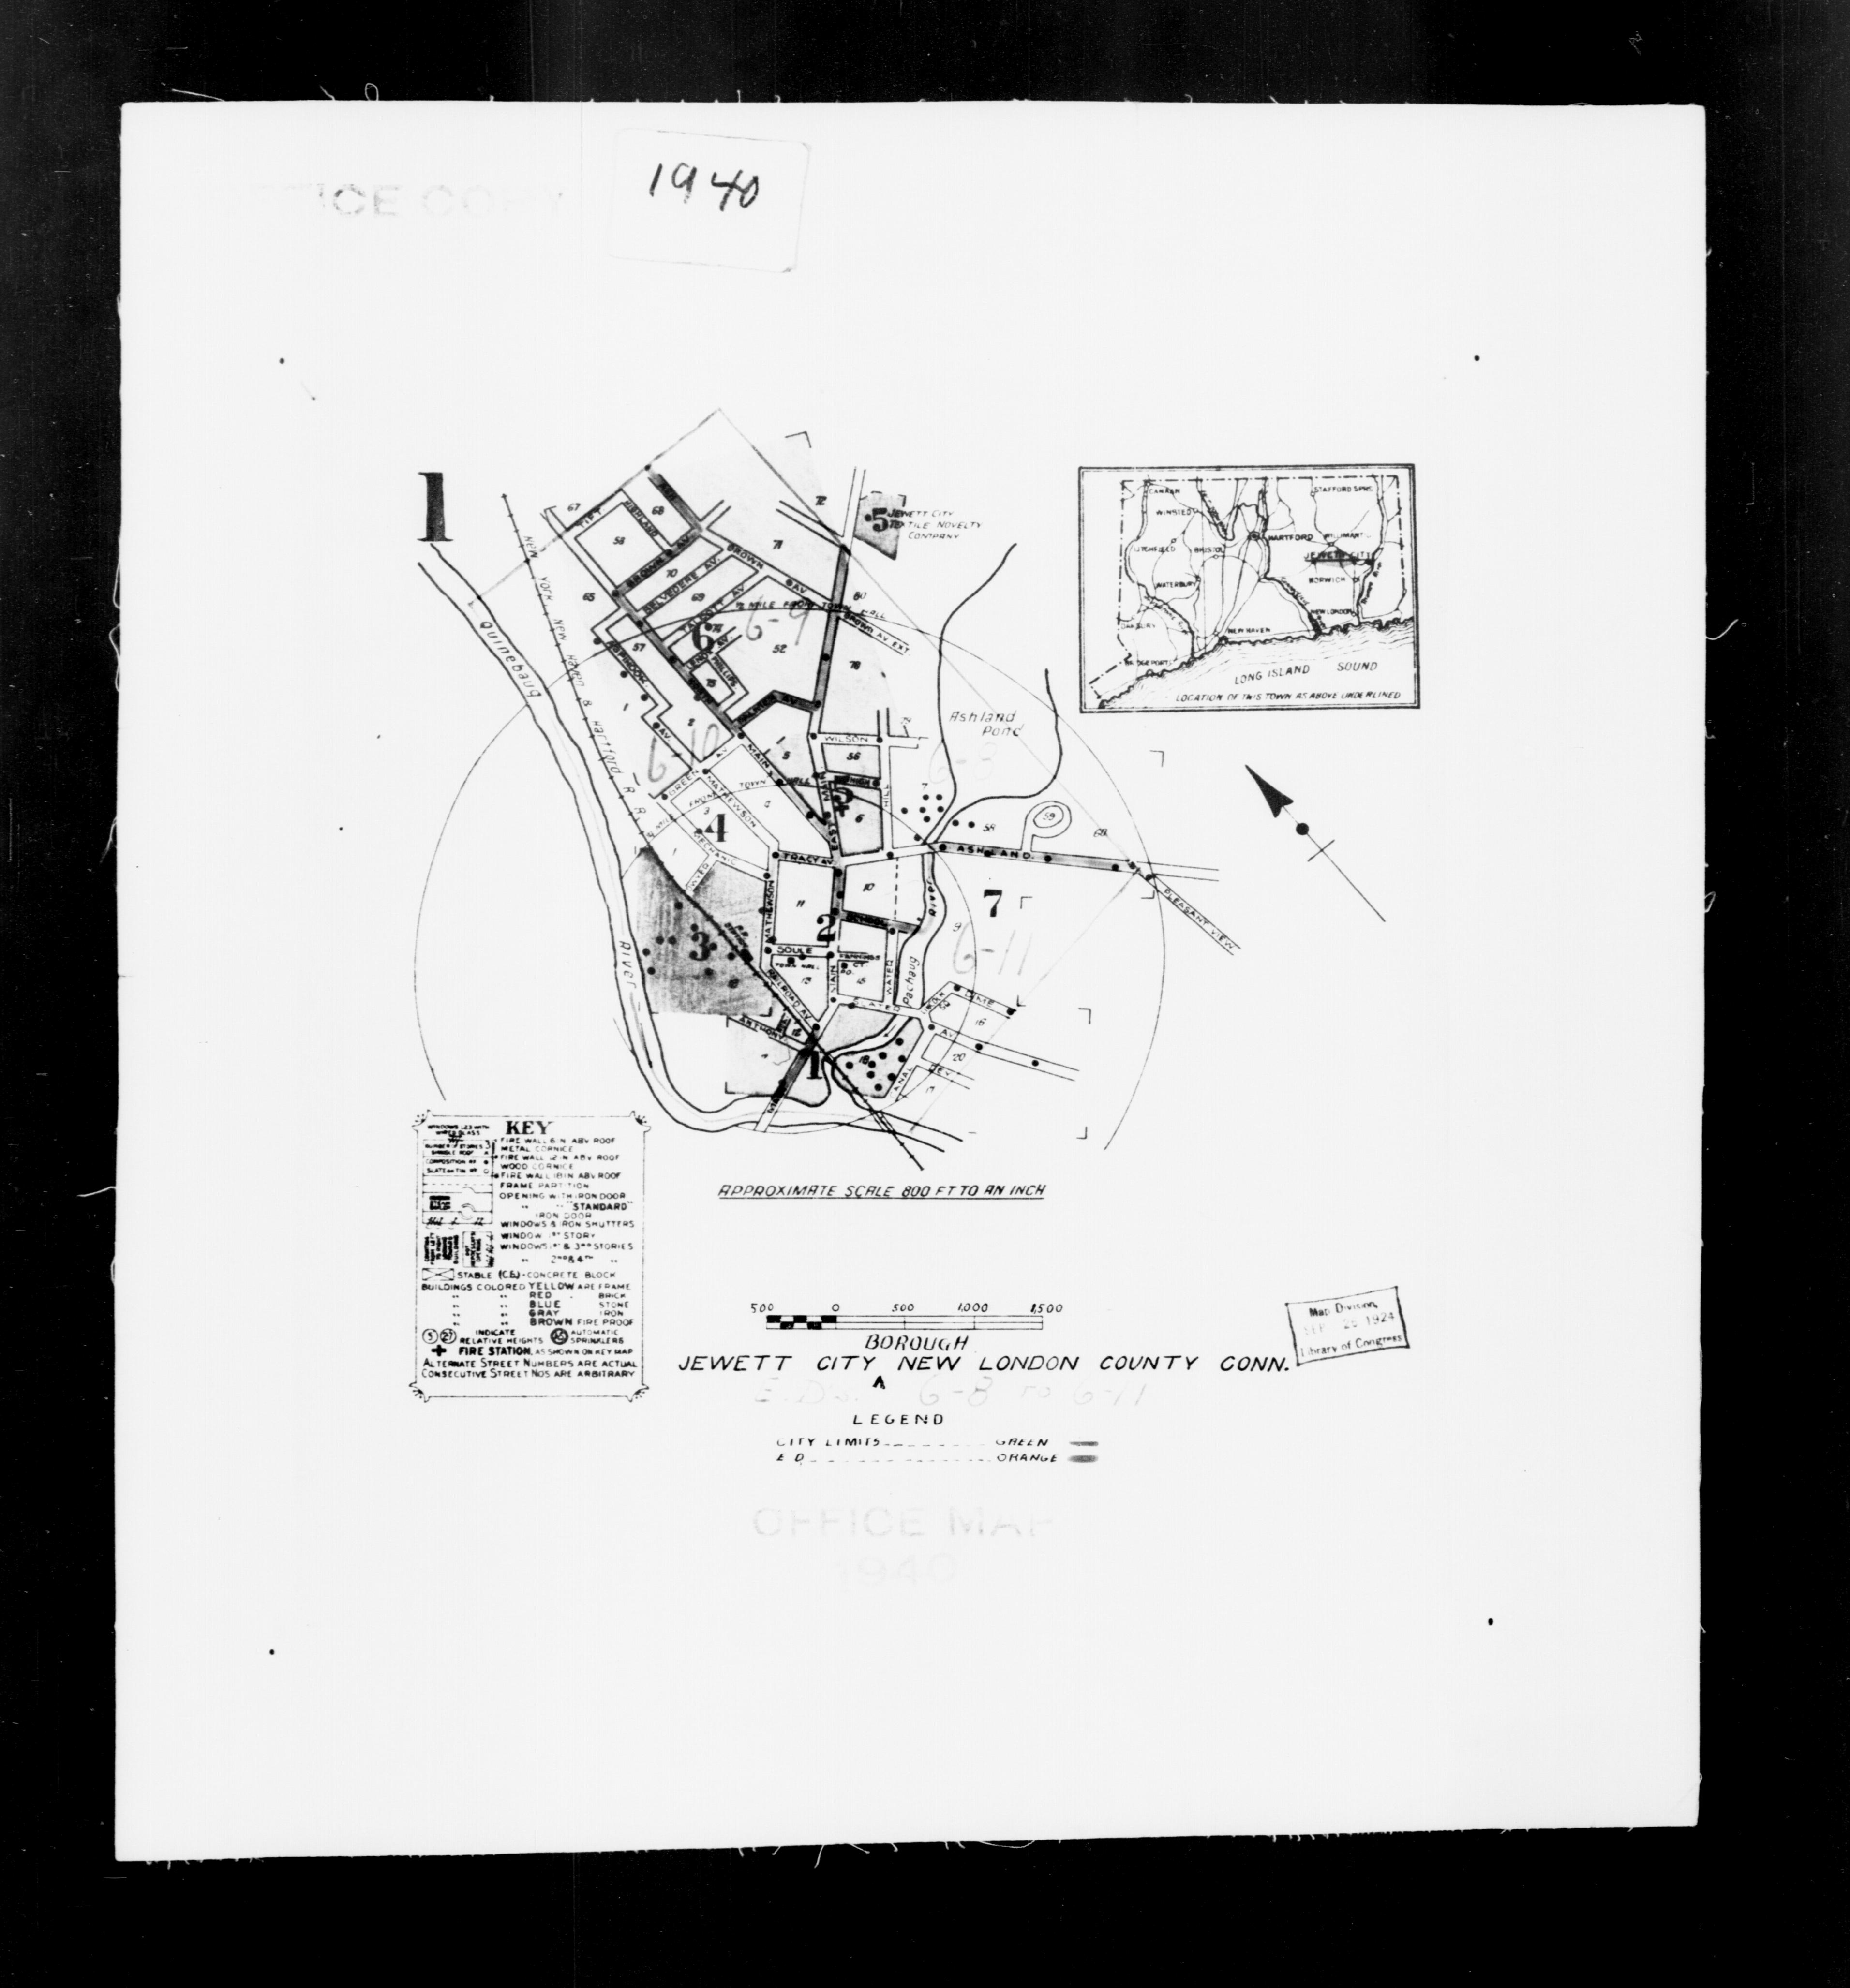 1940 Census Enumeration District Maps - Connecticut - New London County - Jewett